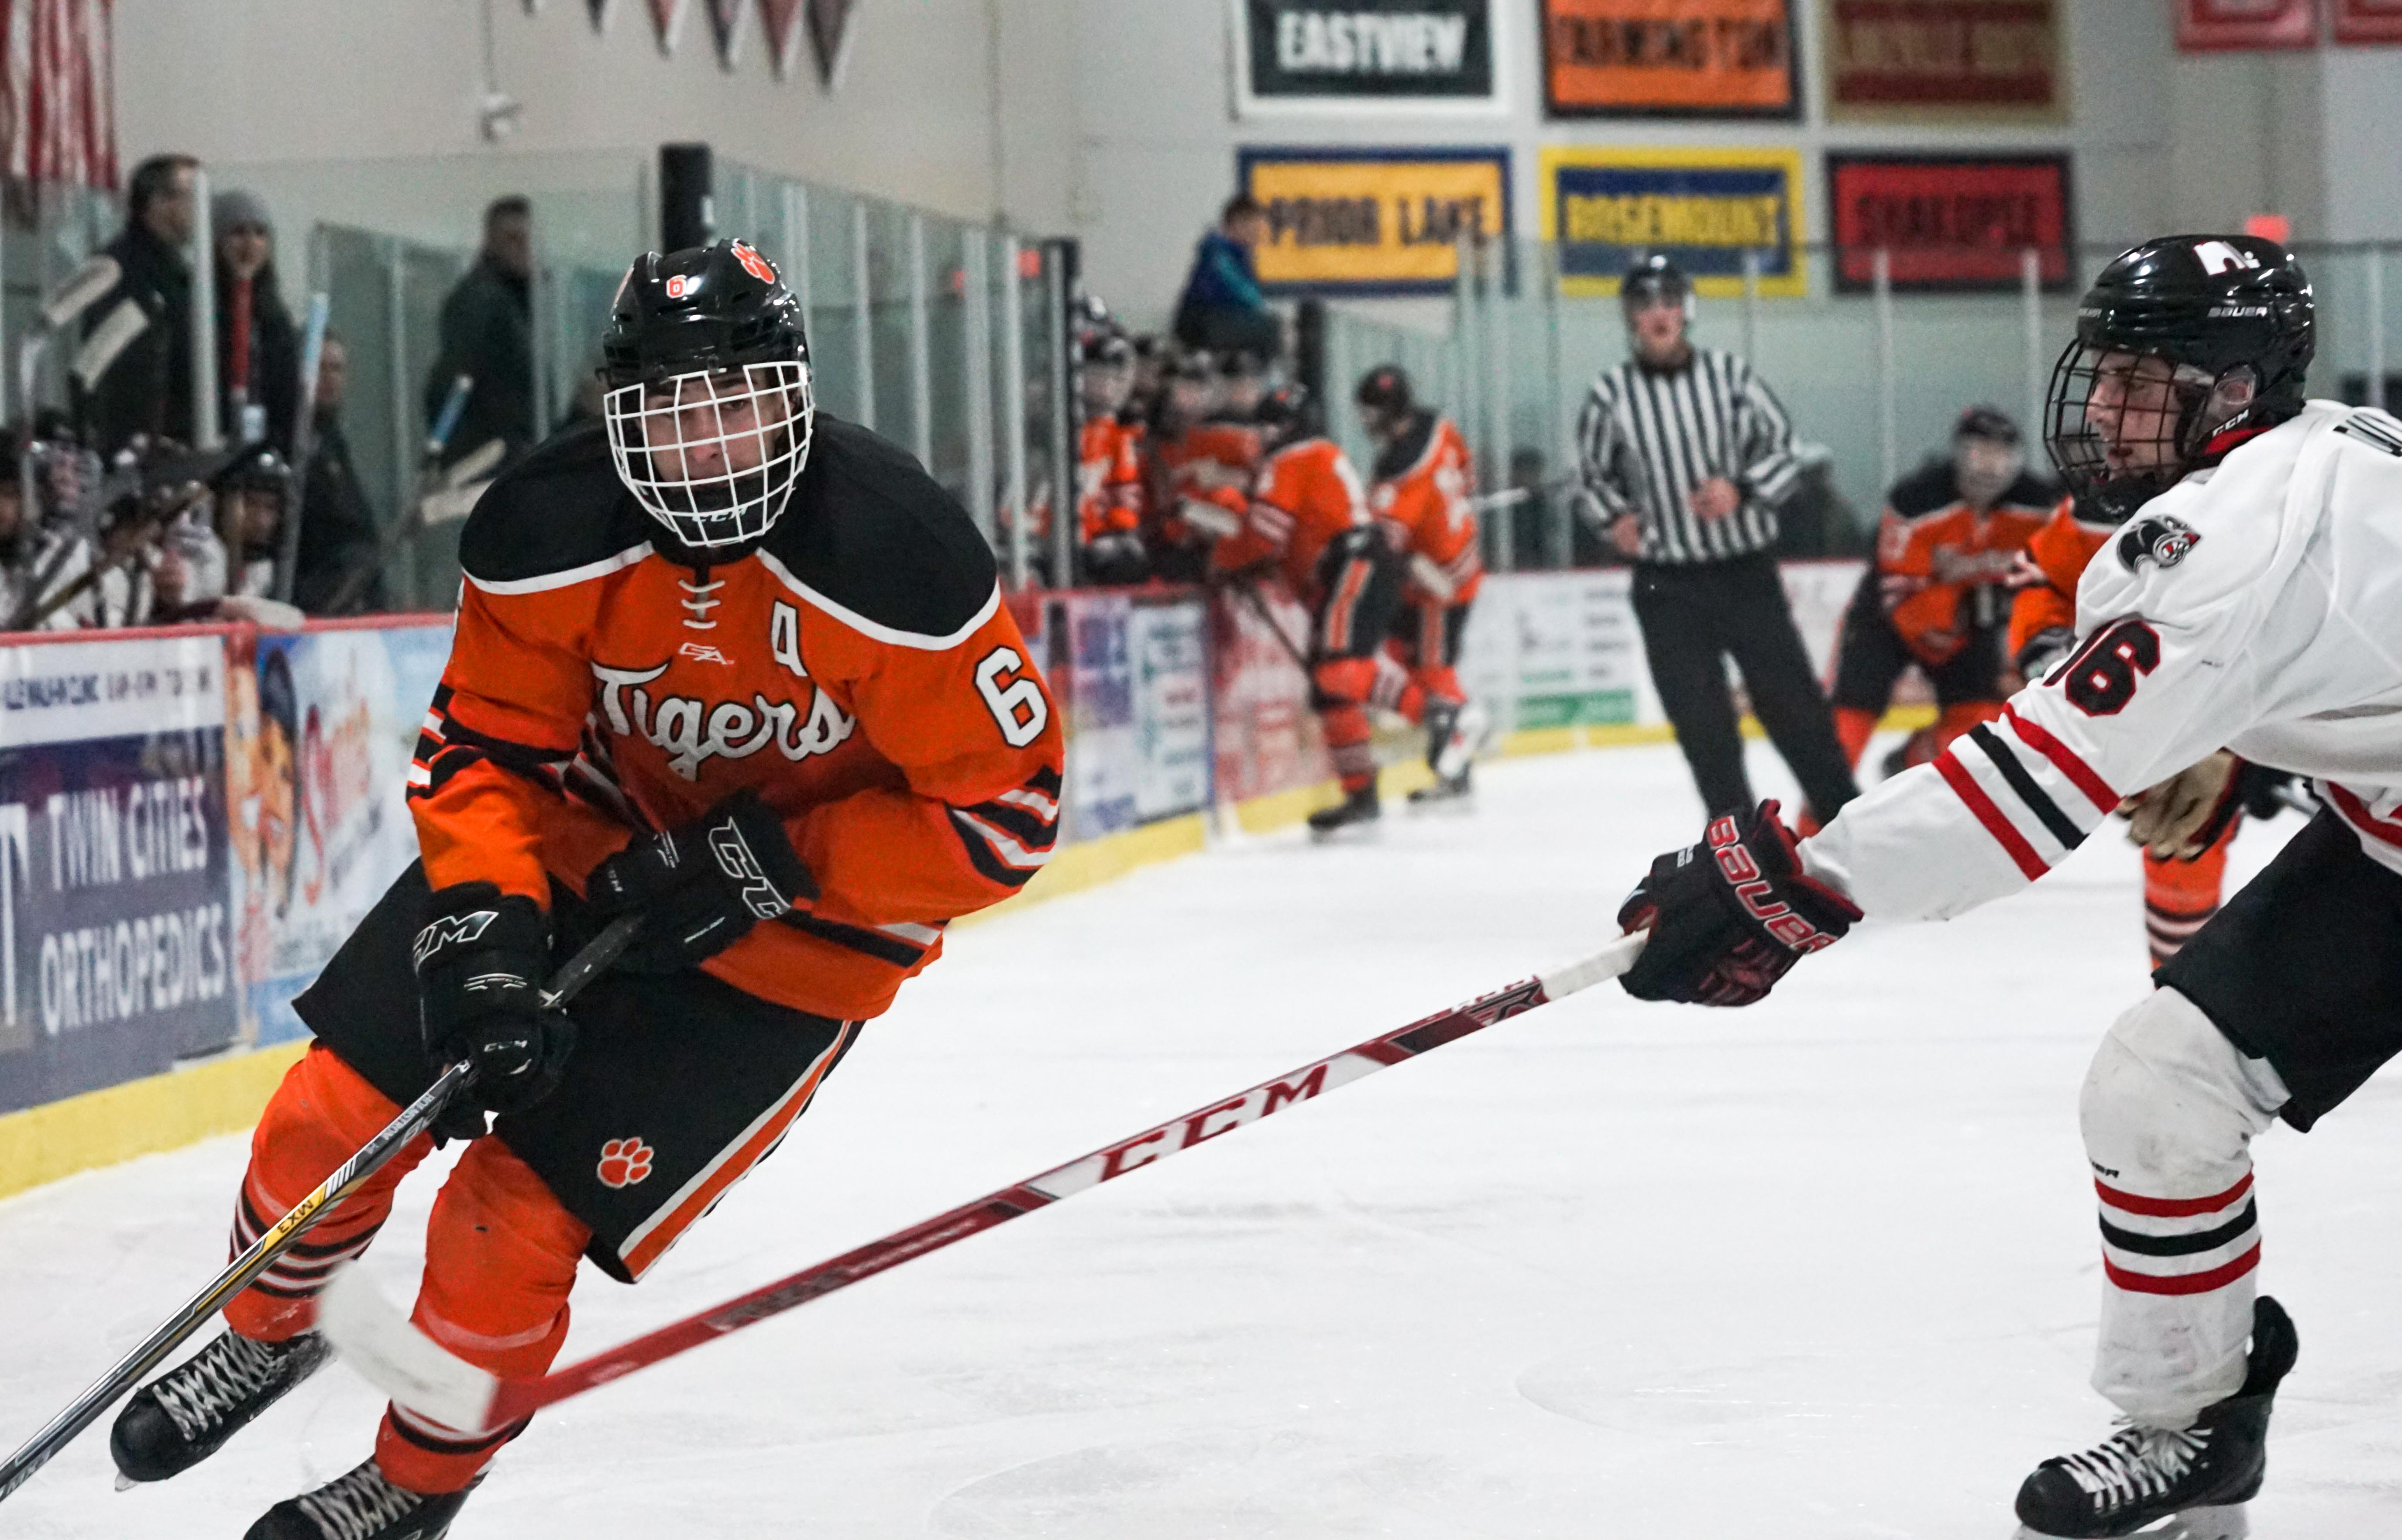 MN H.S.: Late Goal Lifts Farmington Over South Suburban, Section Rival Lakeville North